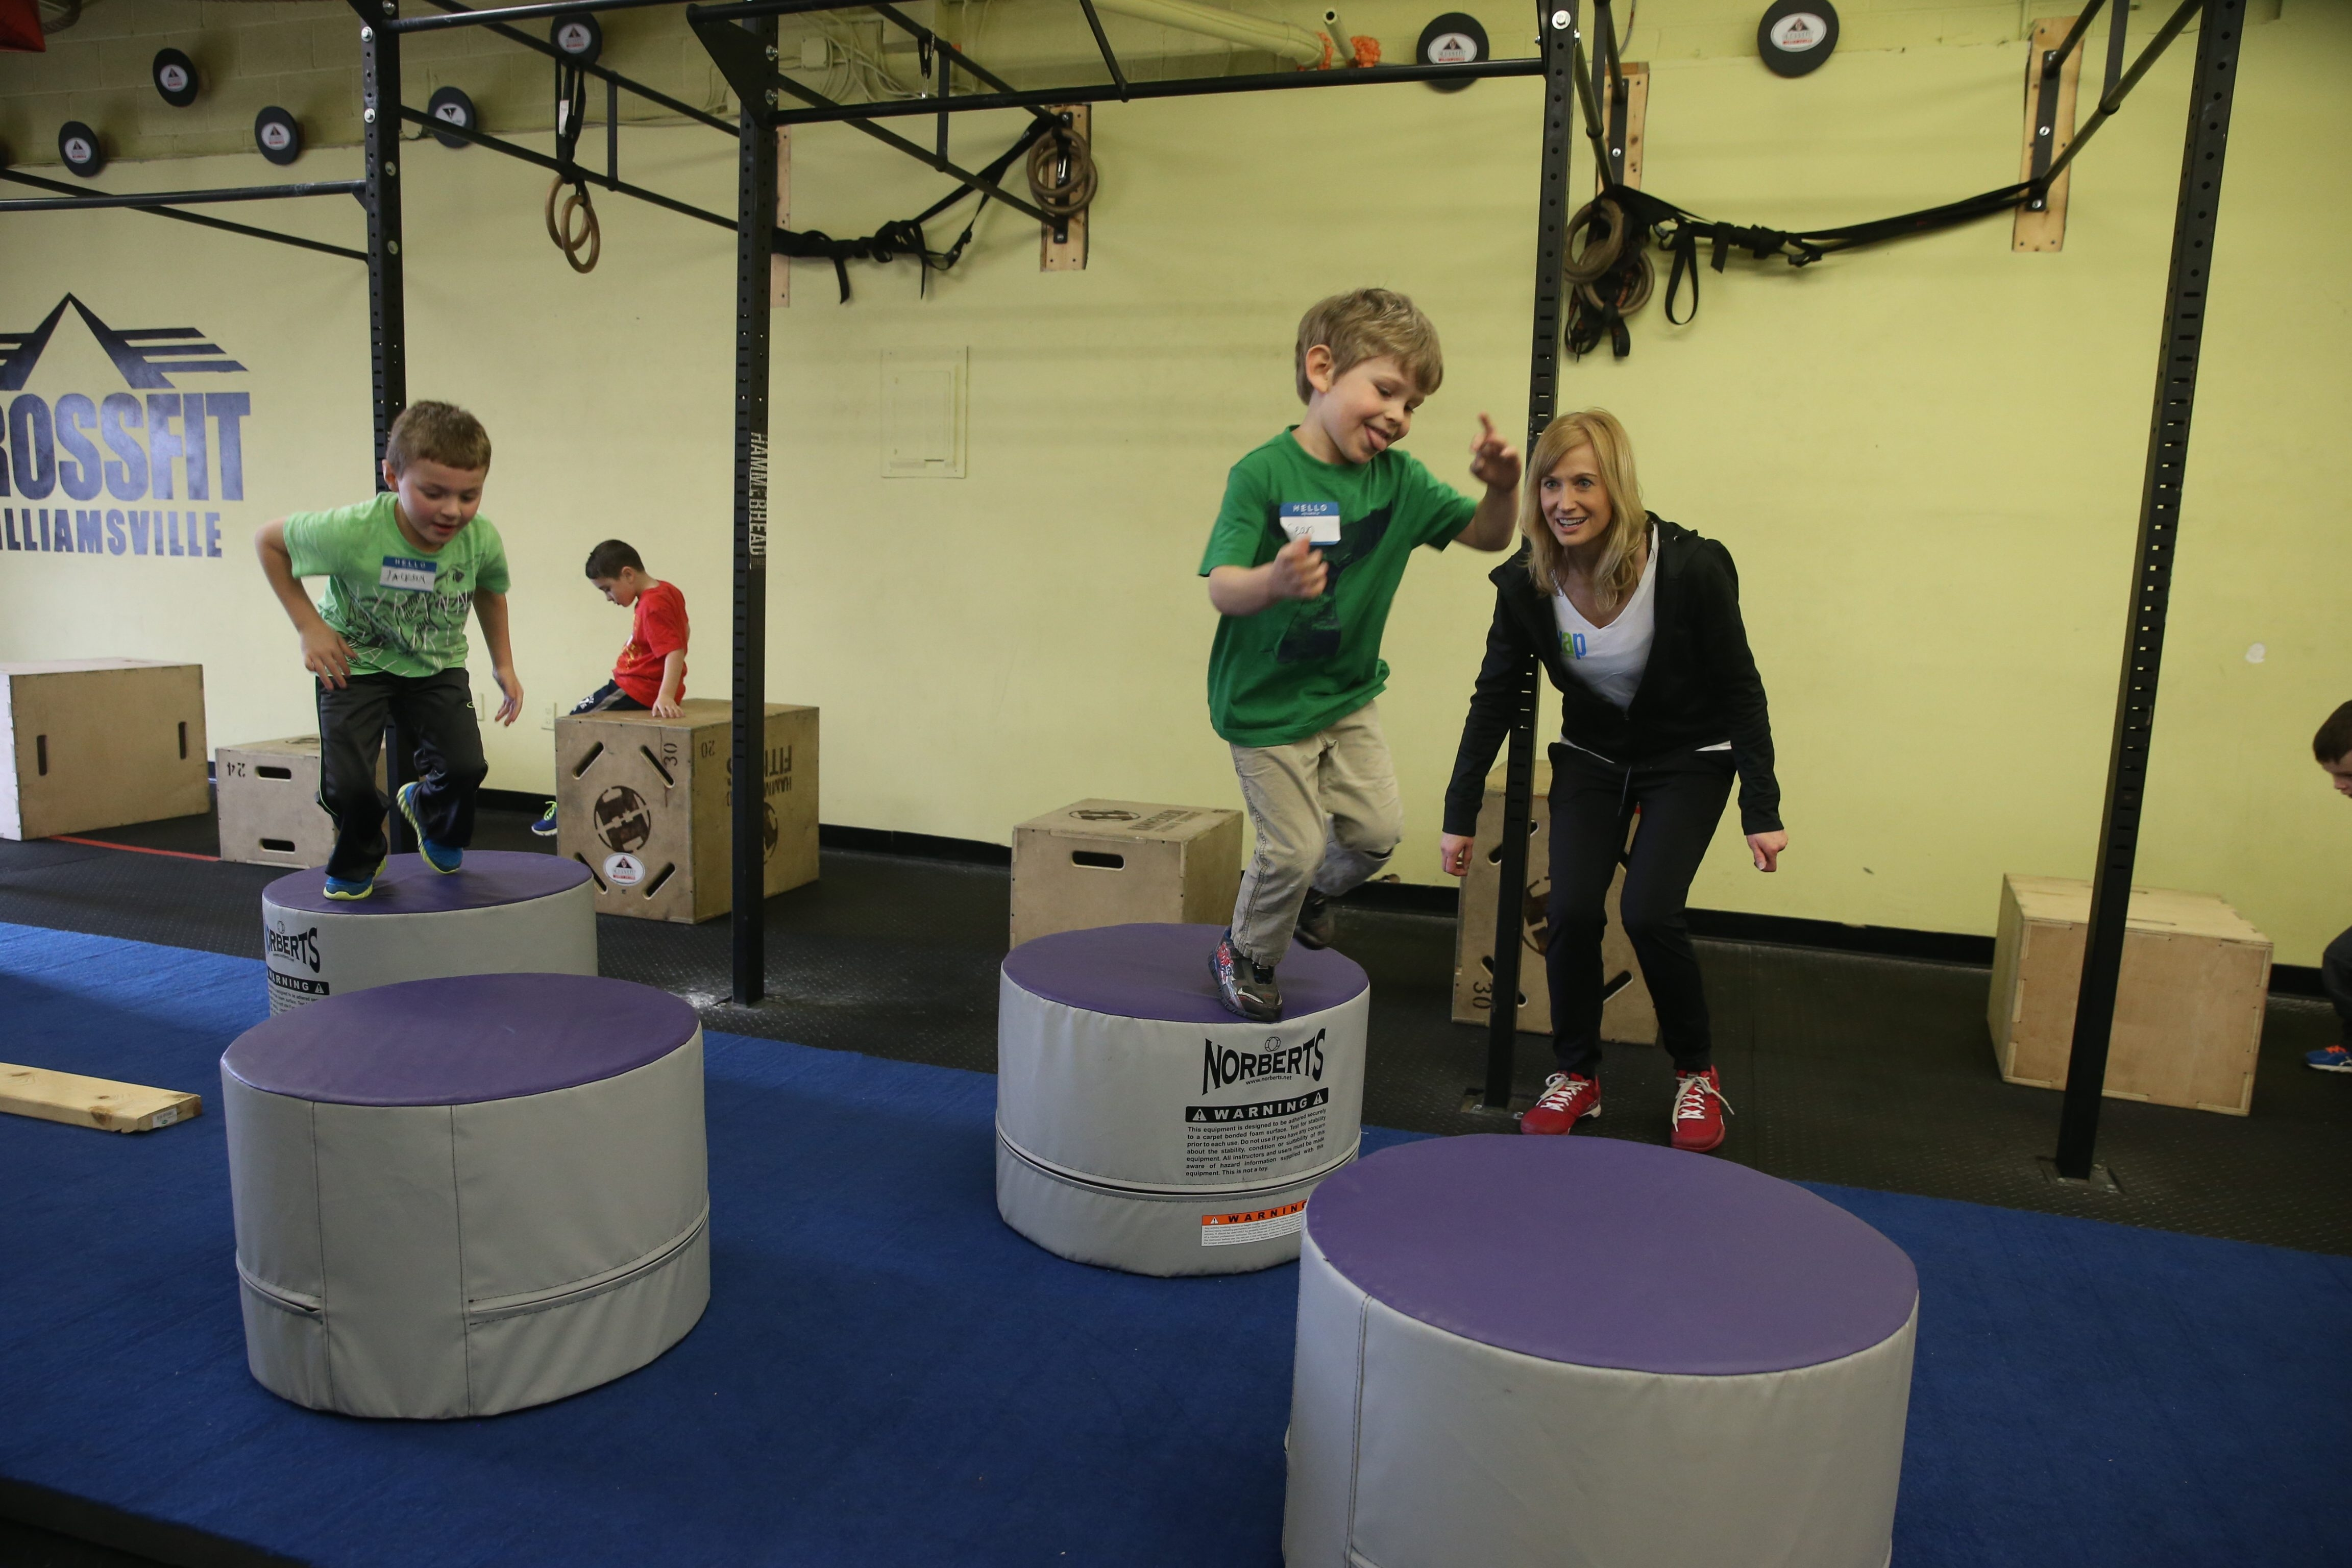 Centerspread for next Saturday's Refresh on getting kids fit to get the most out of the outdoors in the coming months, Christina Bleckinger and her company, SWAP (School Wellness Awareness Project), go to schools and, in this case, a birthday party, set up obstacle course, give kids healthy food and talk to them about health and fitness at the CrossFit, in Williamsville,  N.Y., on Saturday, April 2, 2016. (John Hickey/Buffalo News)